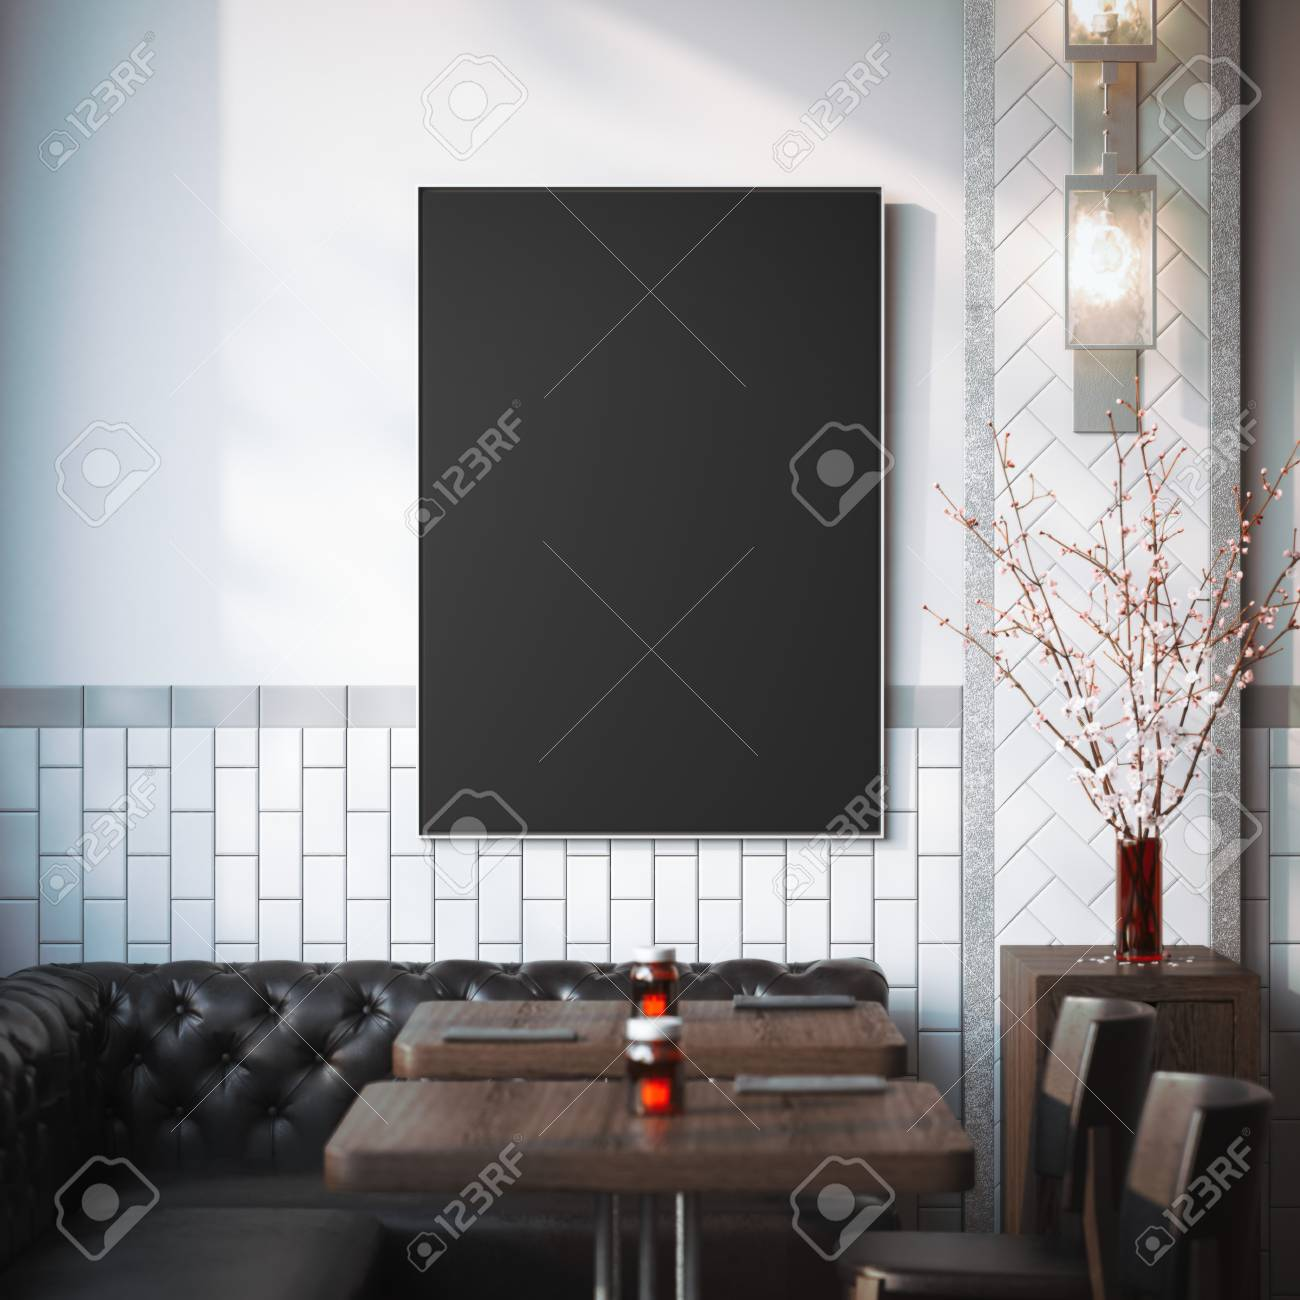 Restaurant Interior With Black Canvas On A Wall And Dark Sofa Stock Photo Picture And Royalty Free Image Image 65666288